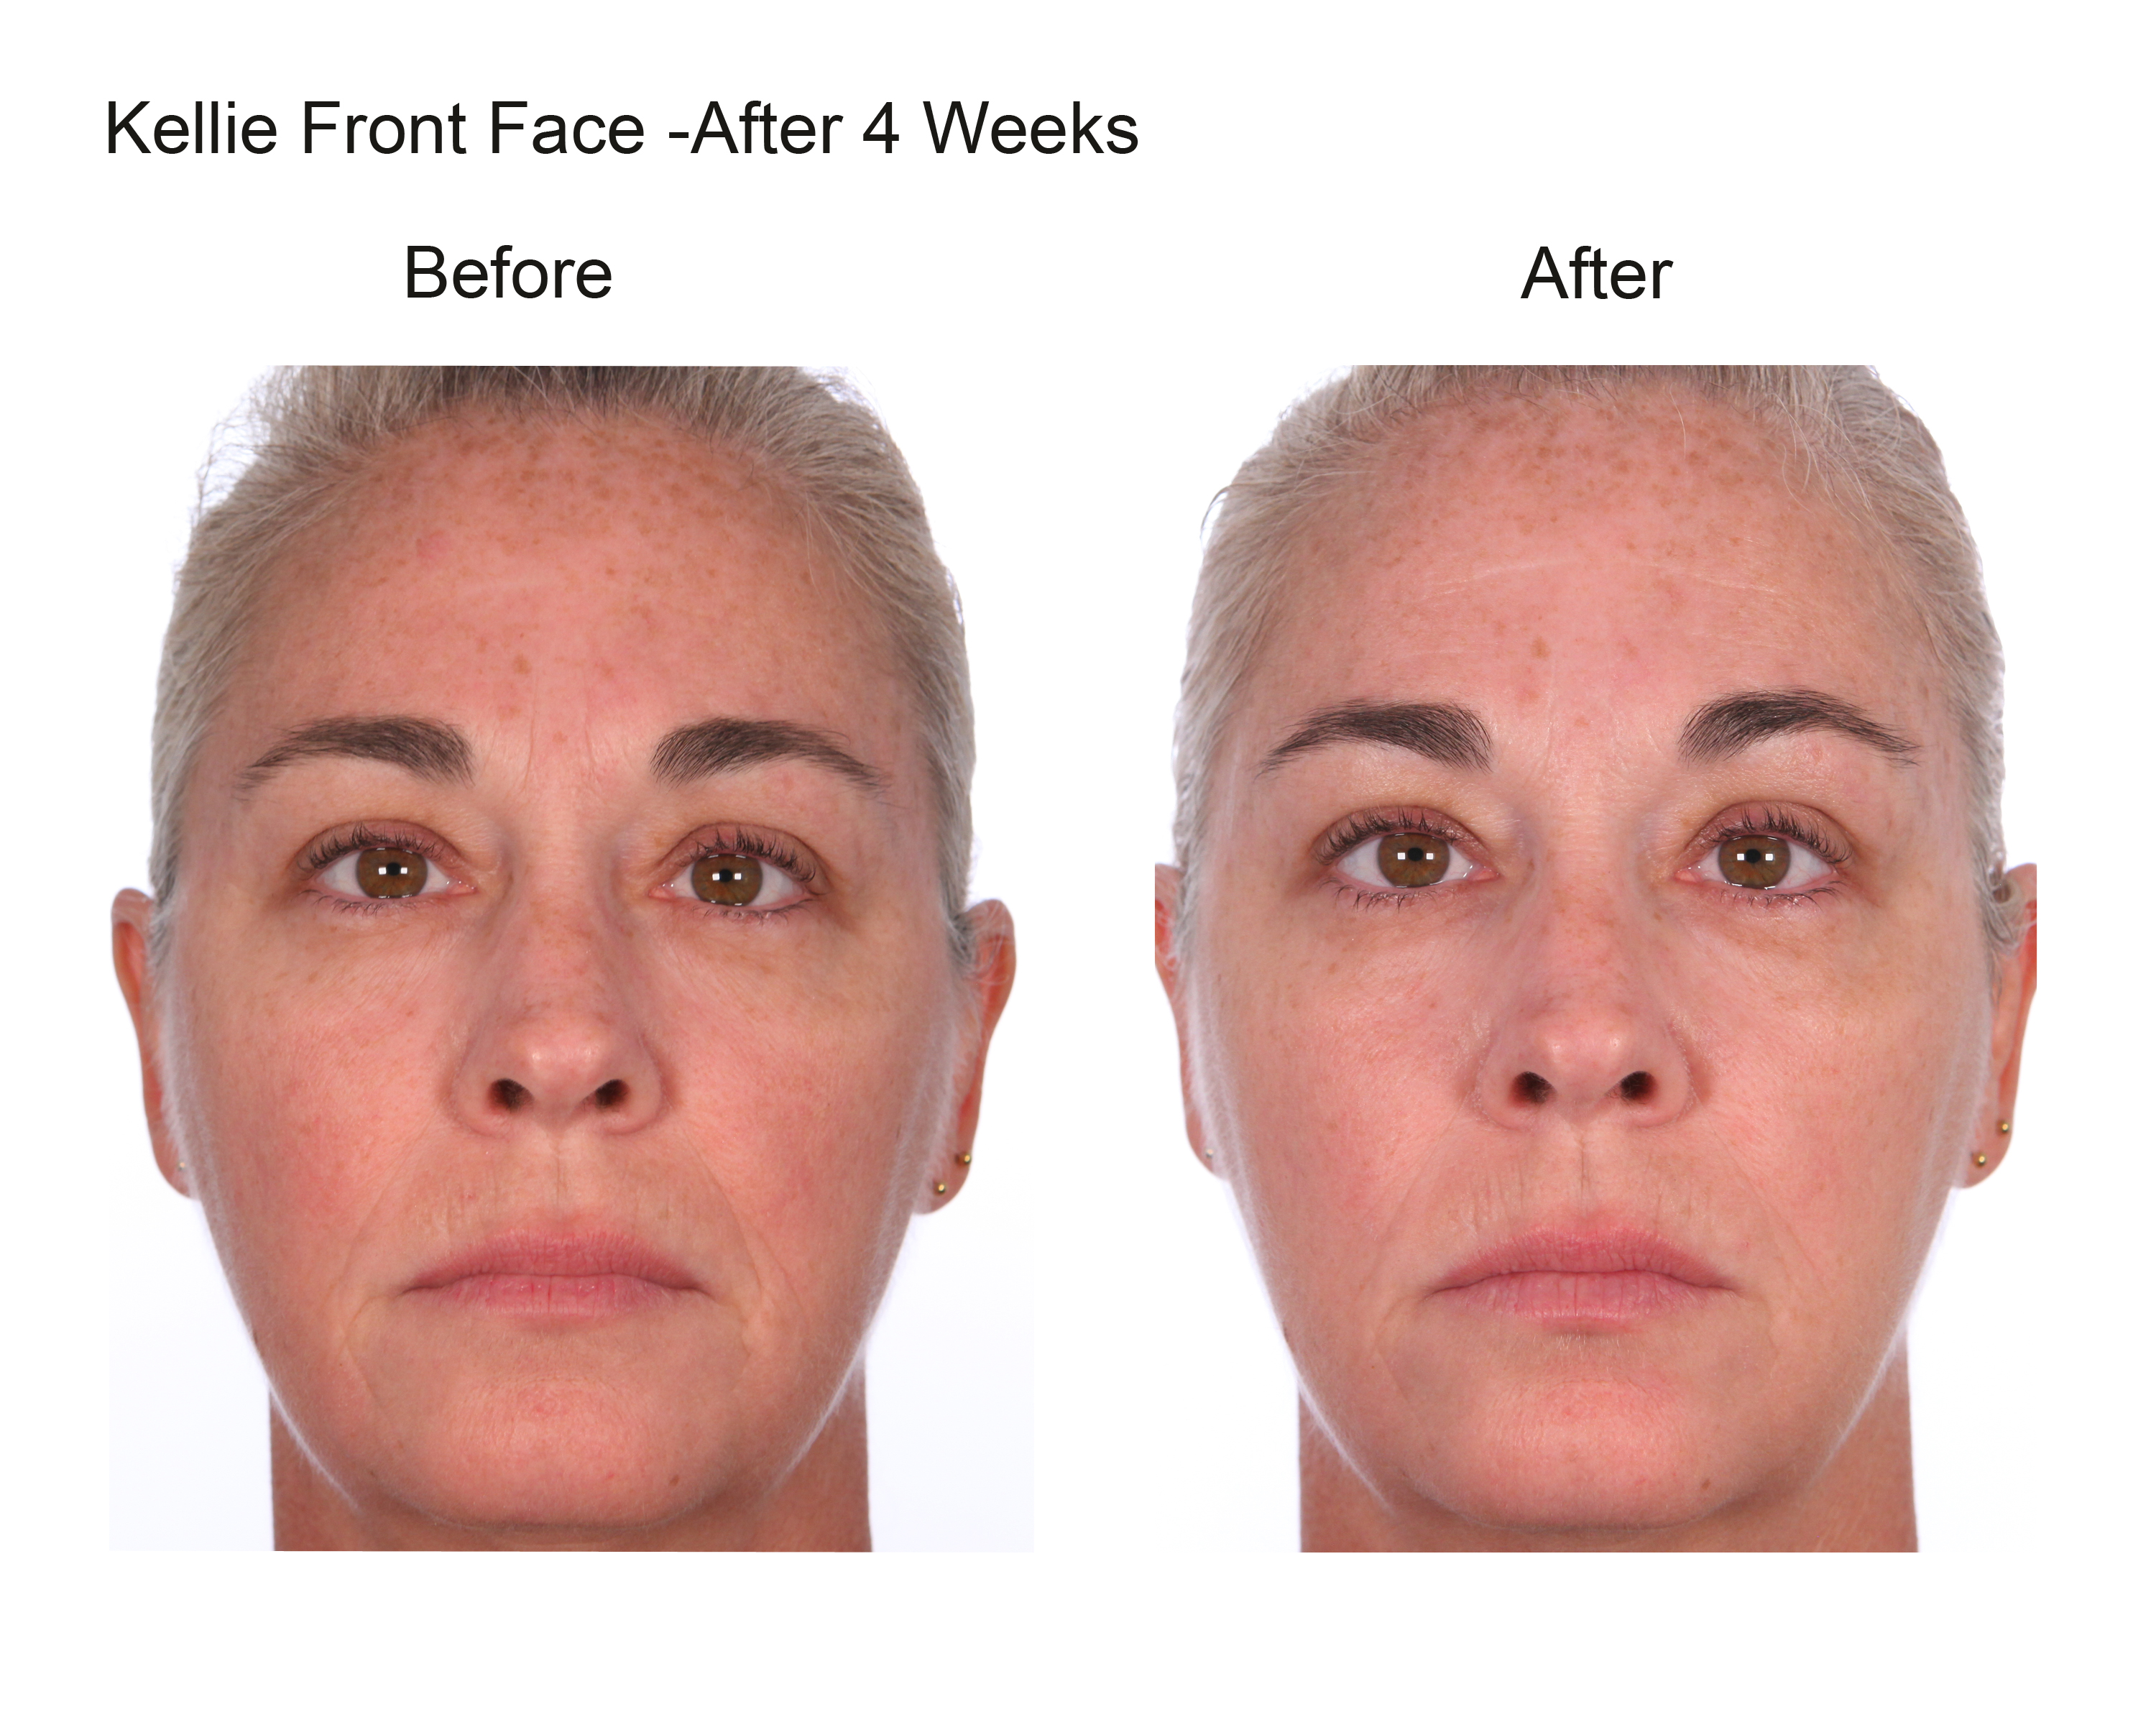 Kellie Front Face After 4 Weeks (5)